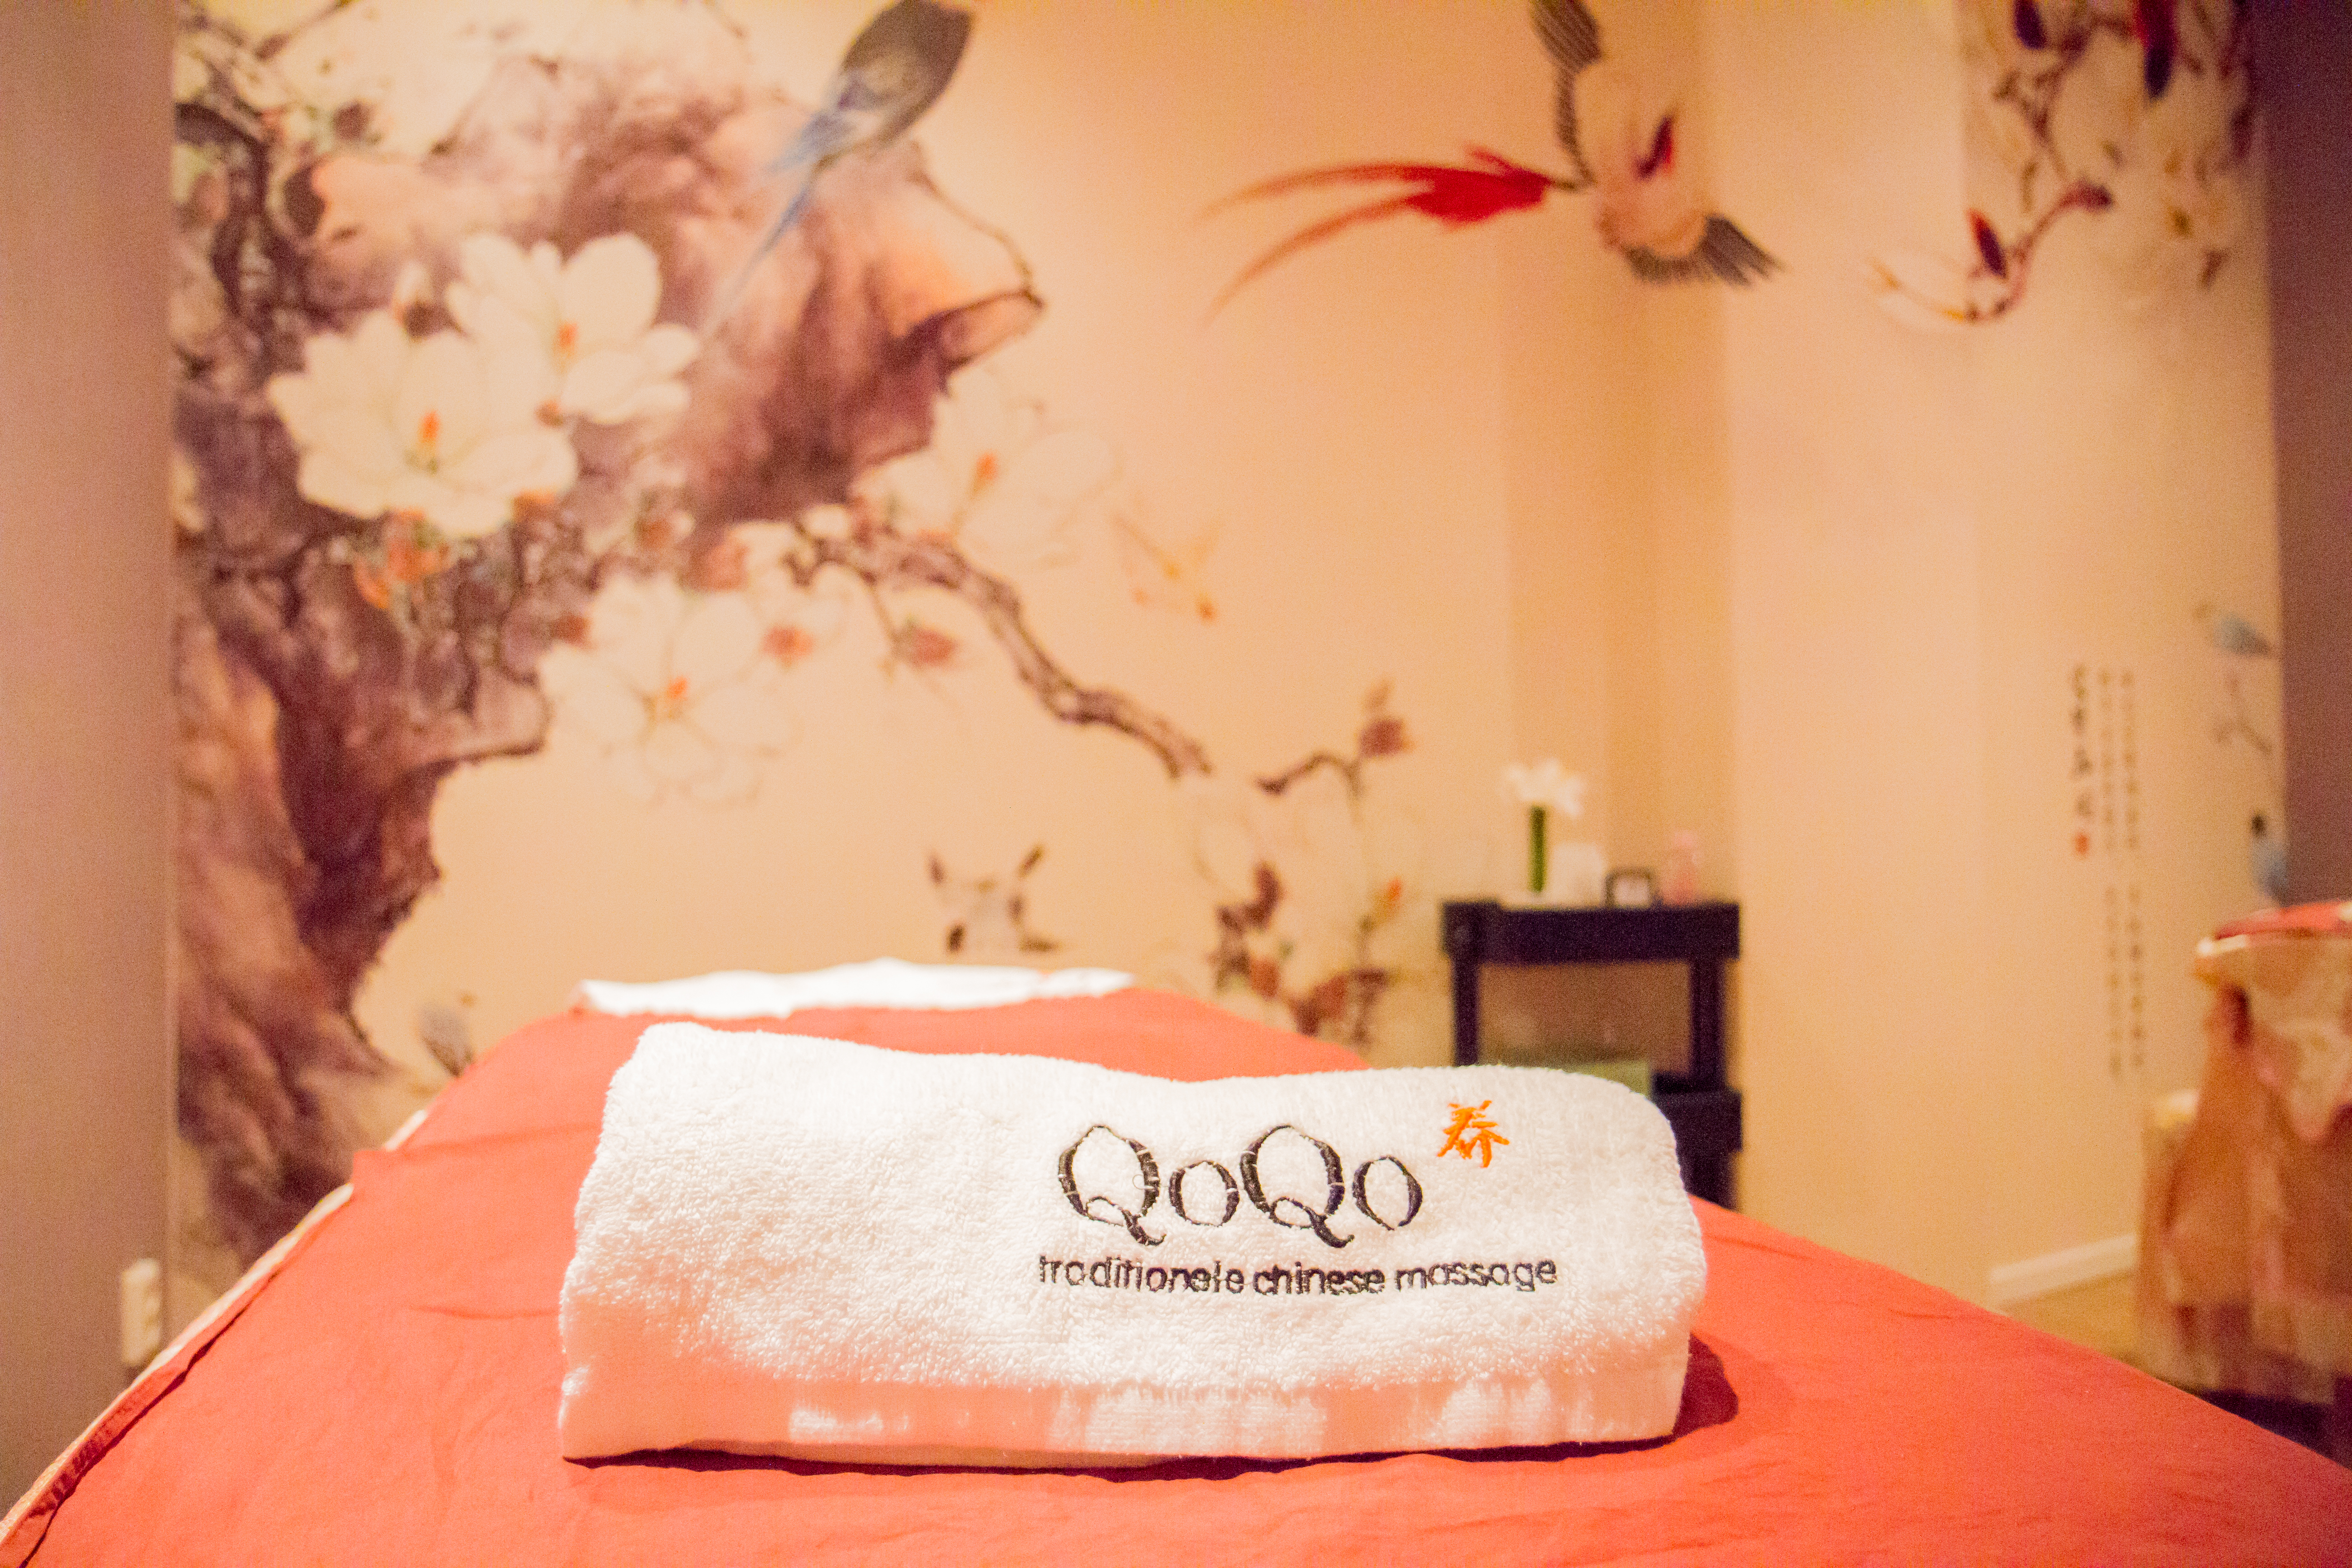 Traditioneel Chinees Bed : Qoqo massage clinics massage tegen post vakantie dip!